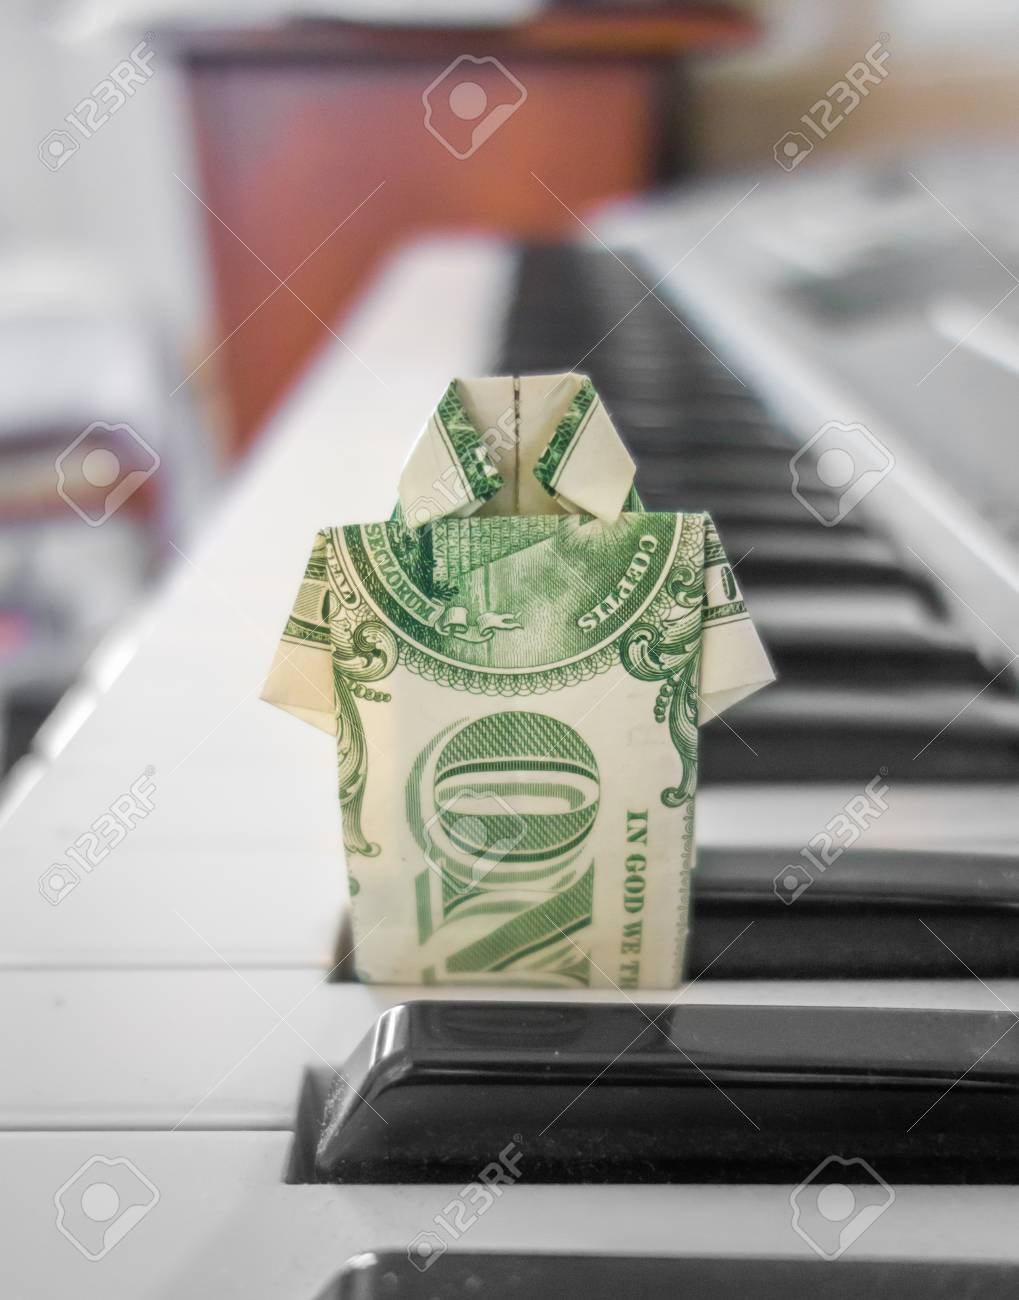 A Crisp Us Dollar Bill Folded Into Collared Shirt Origami Standing